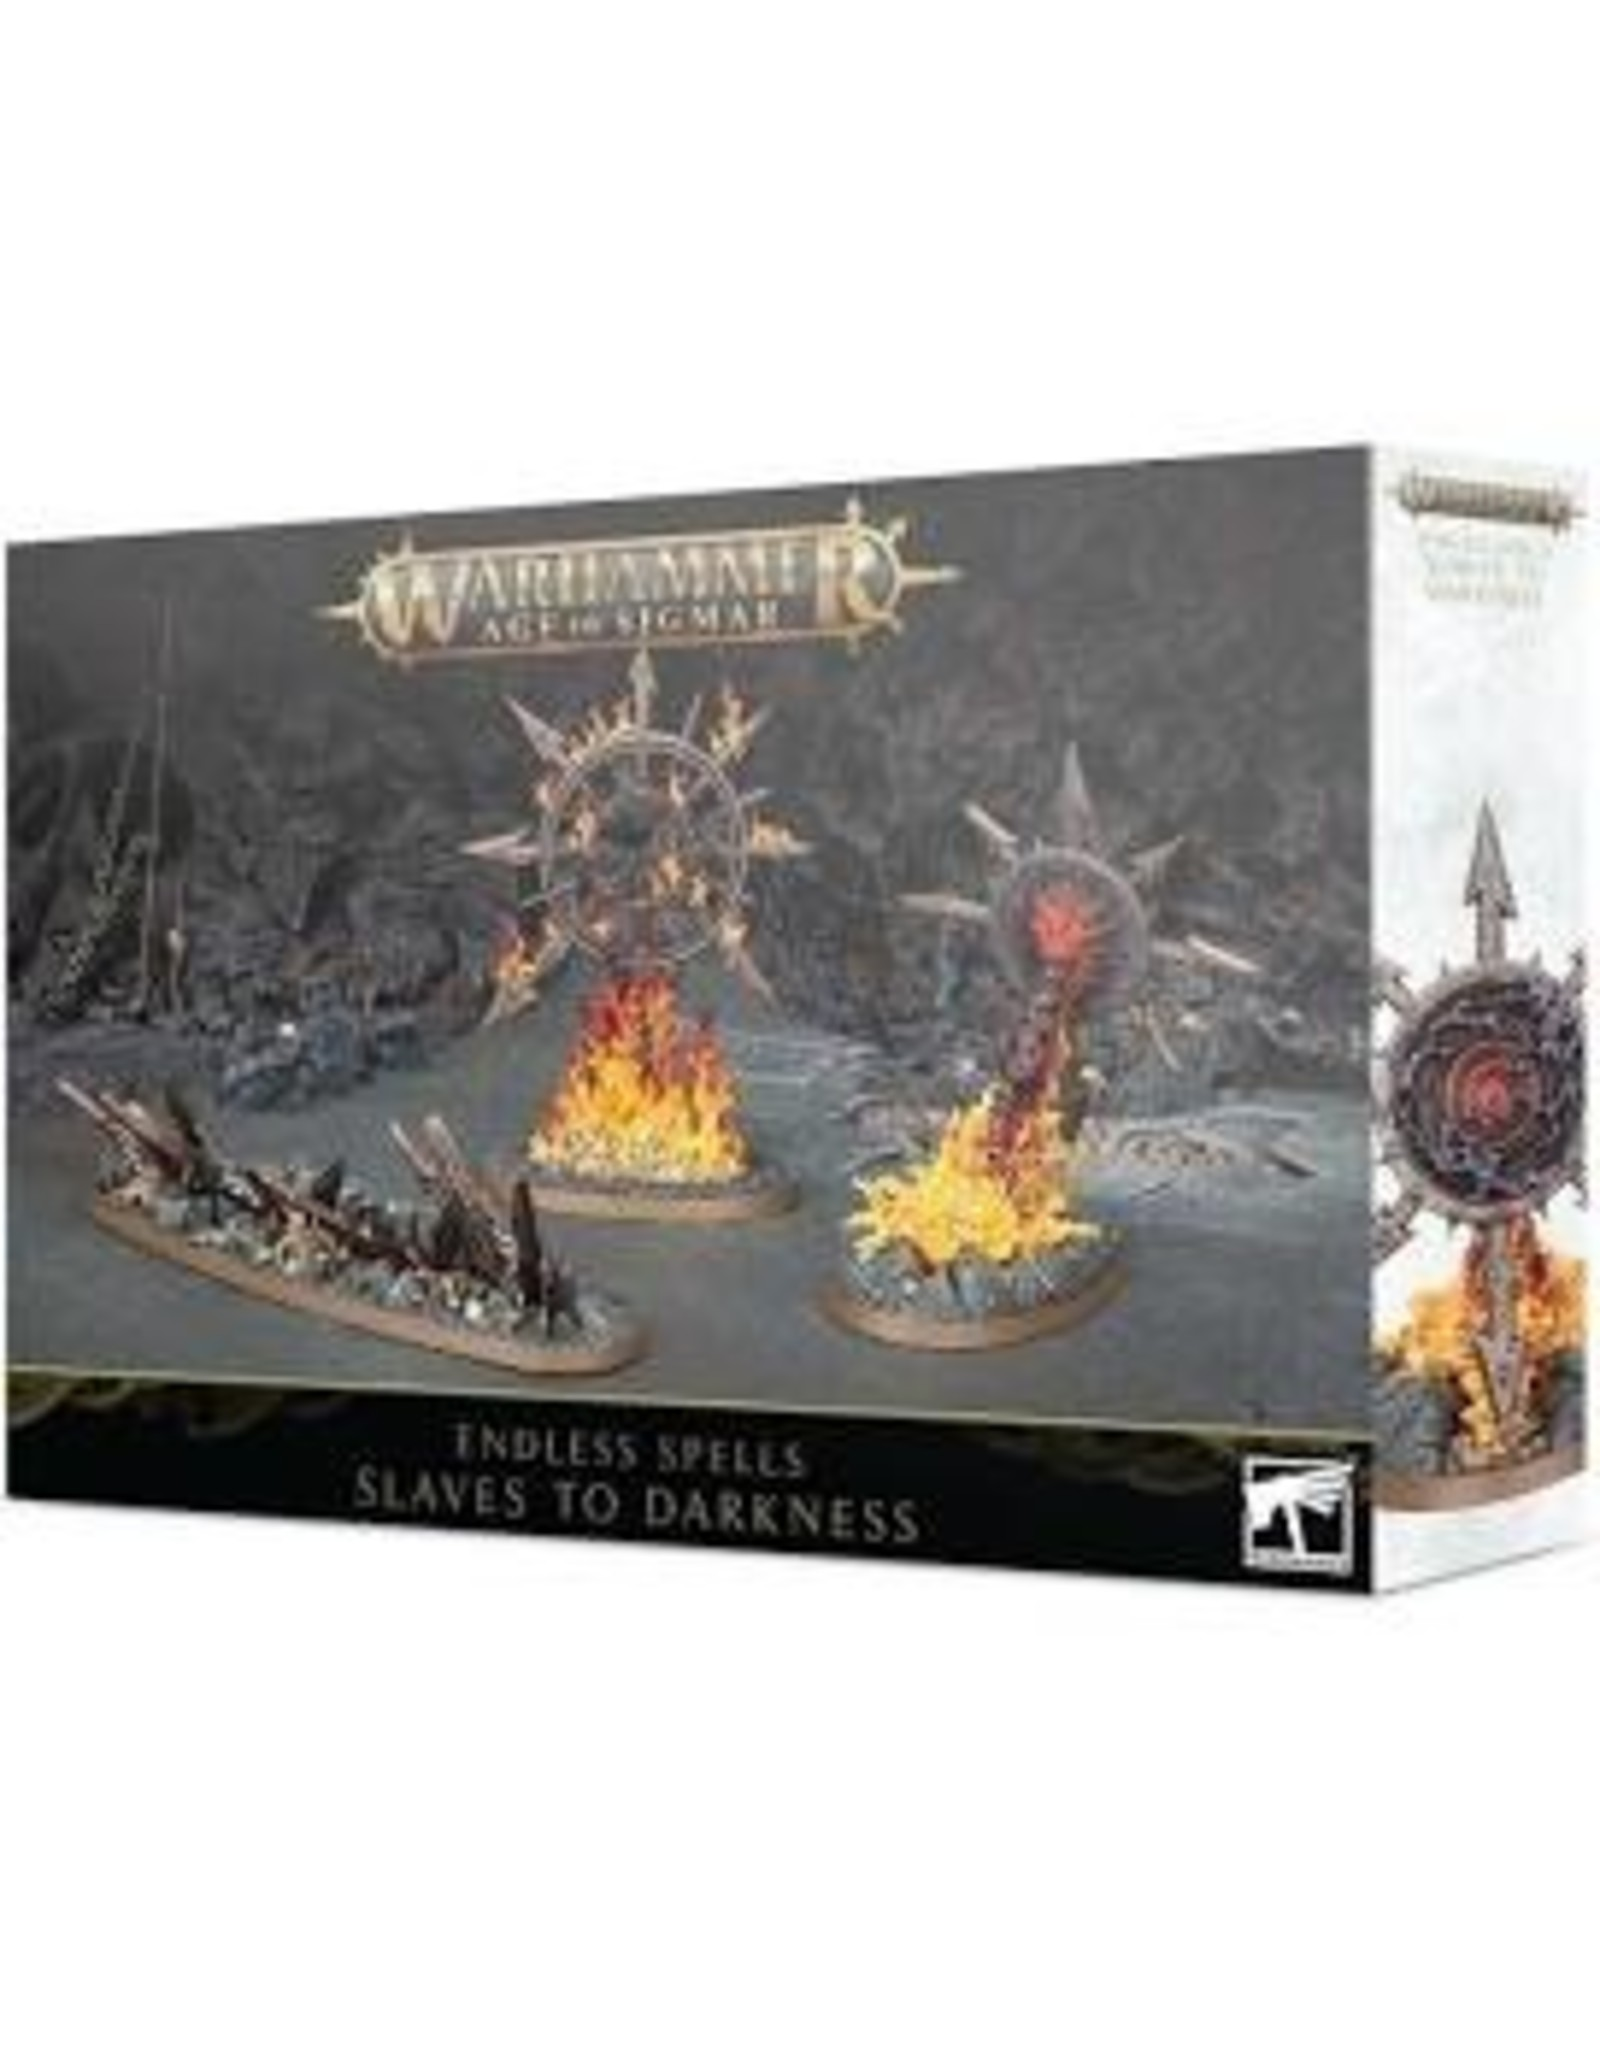 Age of Sigmar Endless Spells: Slaves to Darkness